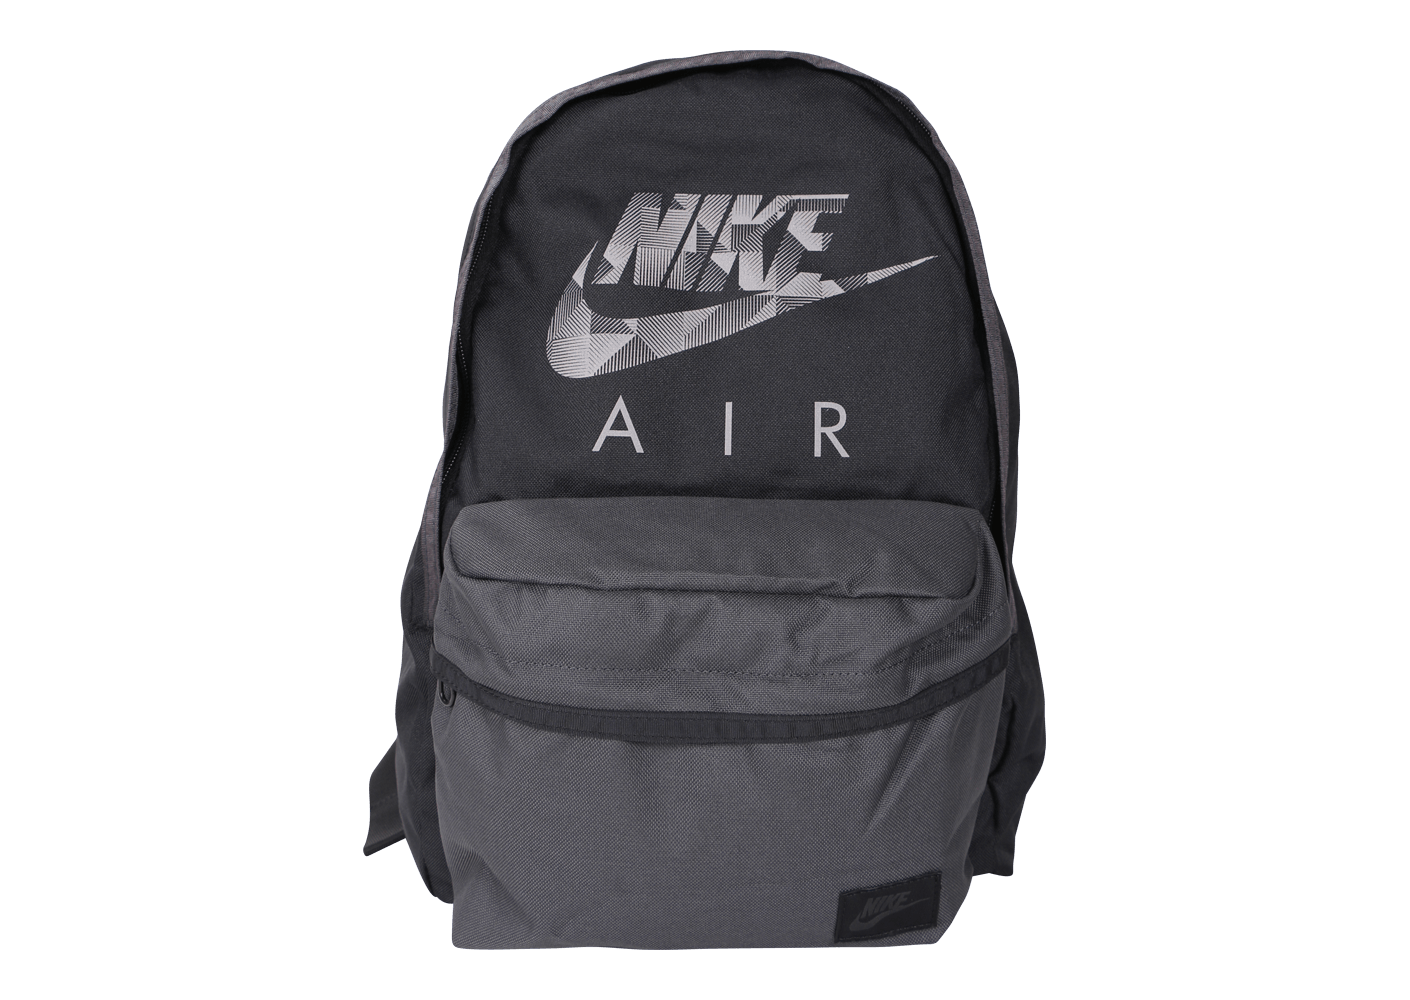 nike sac a dos nike air noir et gris sacs sacoches chausport. Black Bedroom Furniture Sets. Home Design Ideas